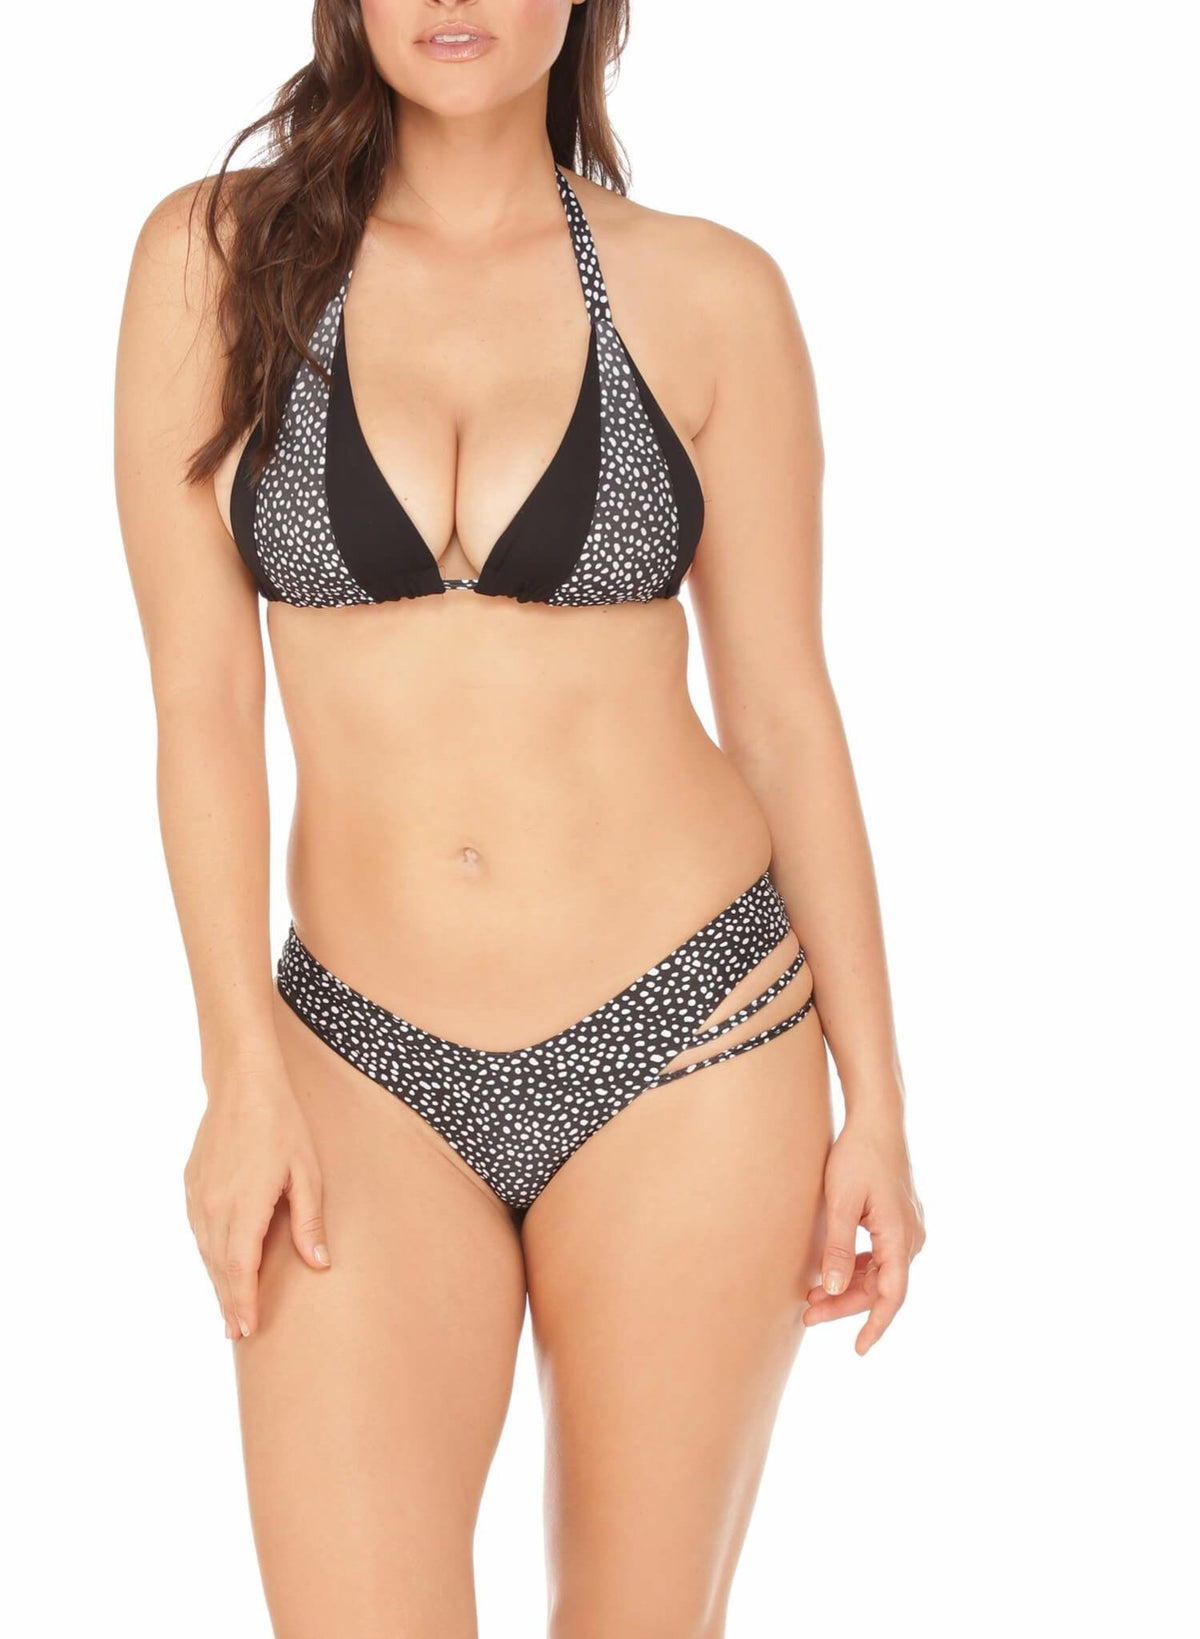 Cali High Cut Bottoms - Brazilian - Polka Dots